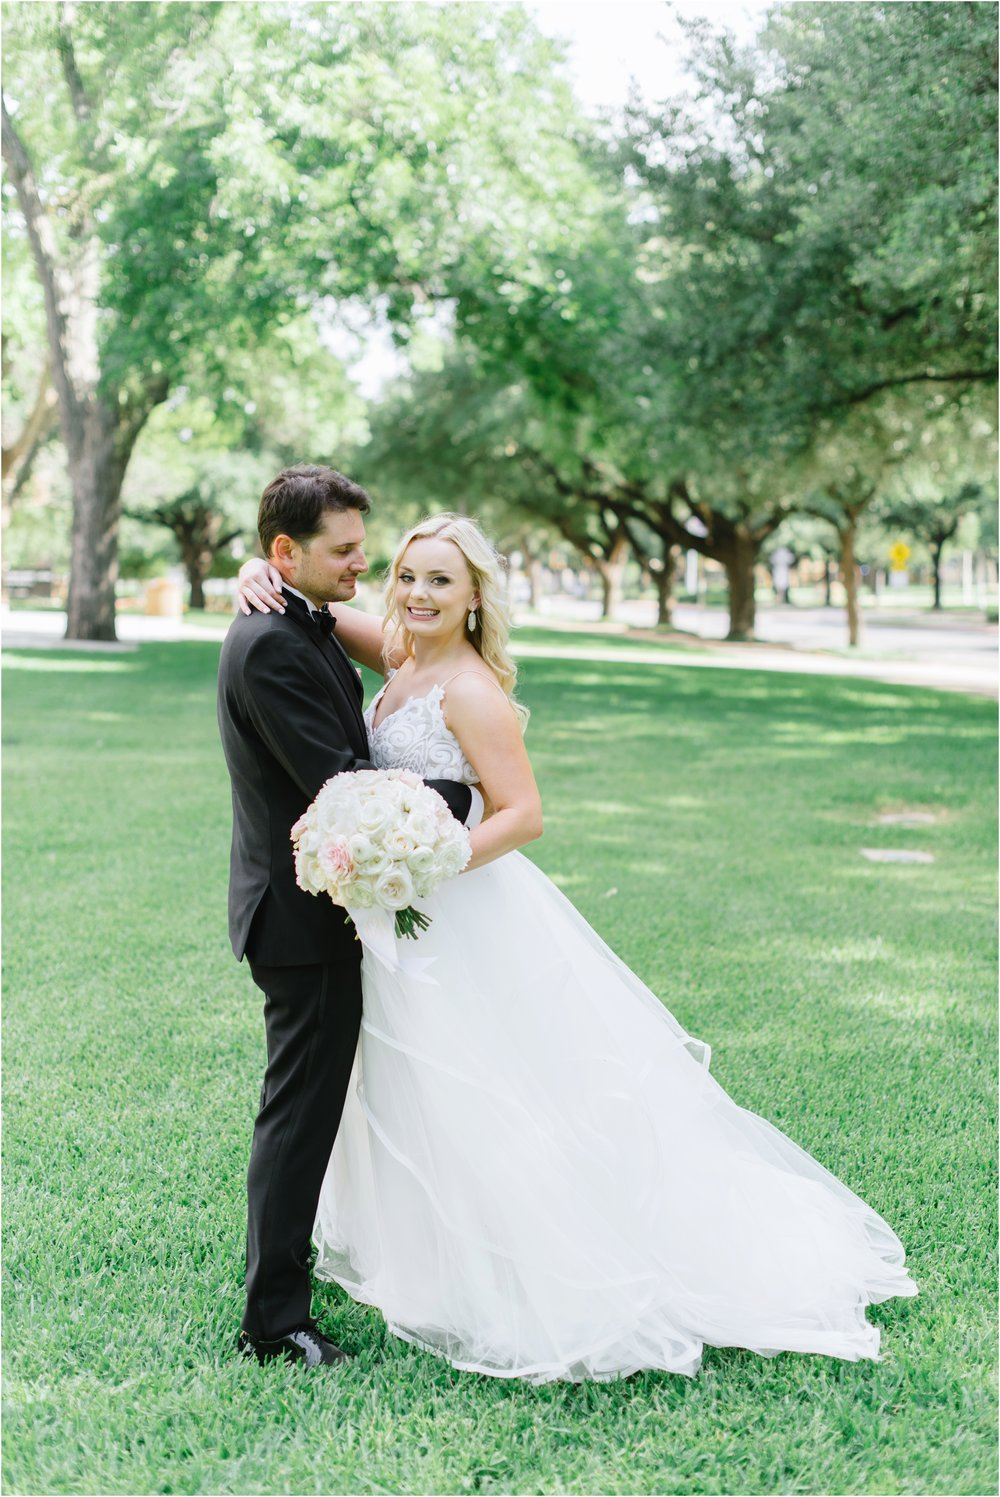 dallasweddingphotographer_fortworthweddingphotographer_texasweddingphotographer_mattandjulieweddings_0014.jpg